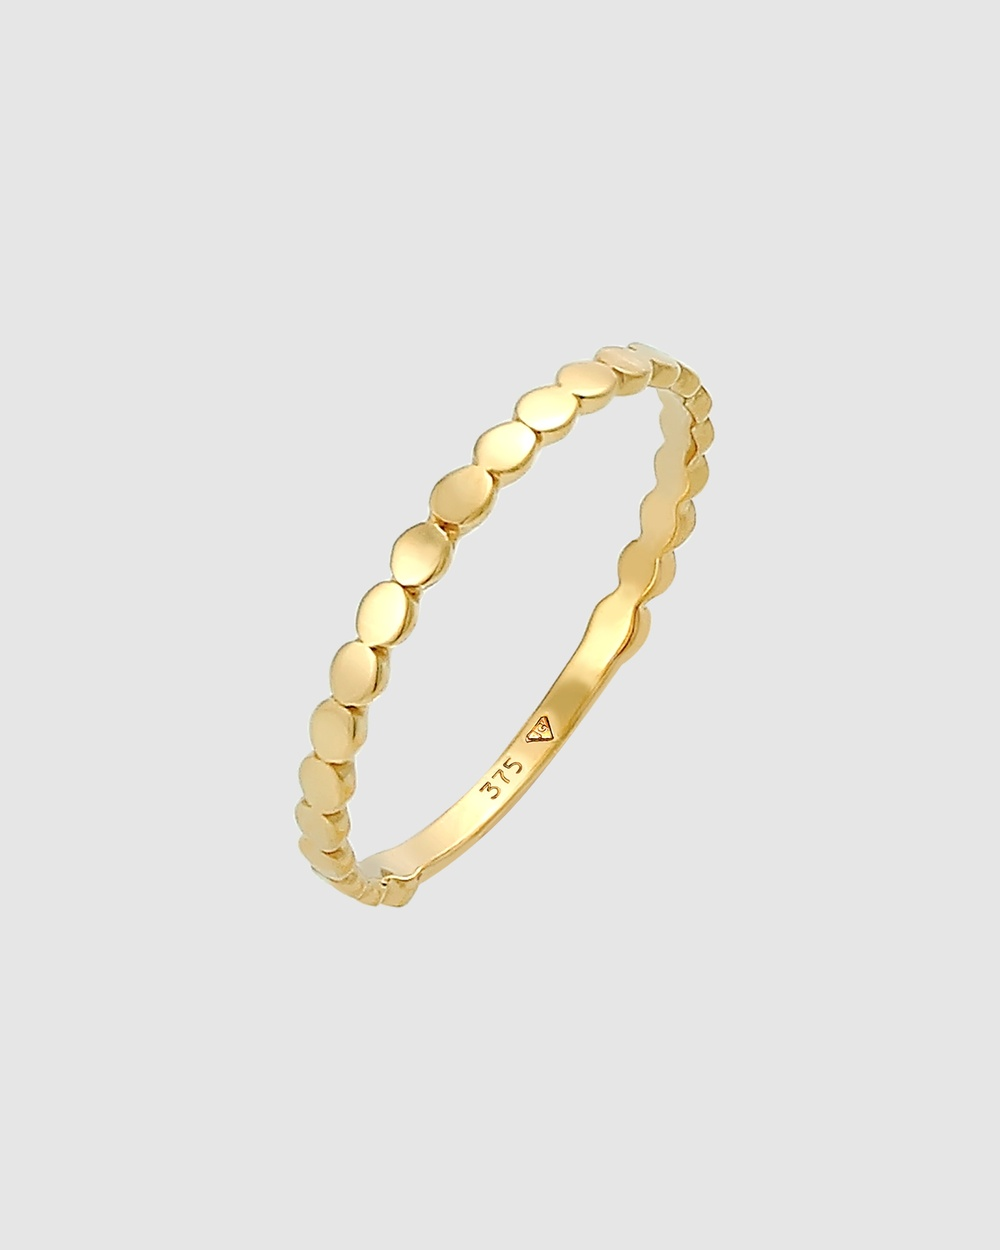 Elli Jewelry Ring Plate Round Stacking Geo Basic in 375 Yellow Gold Jewellery Gold